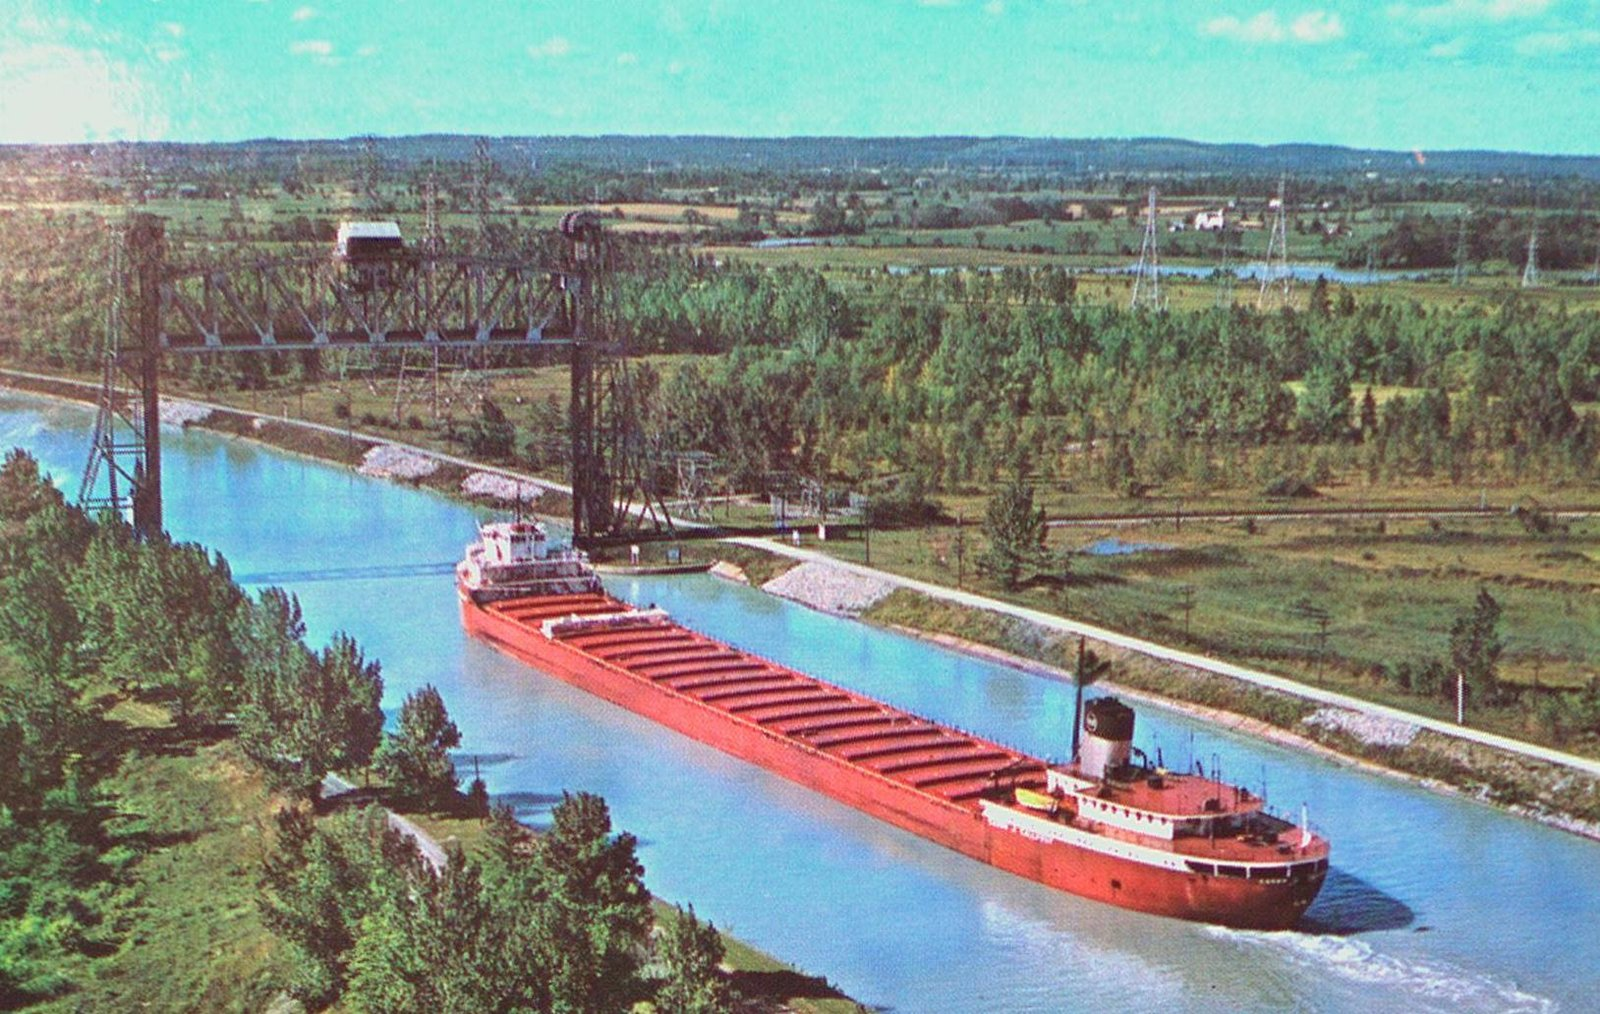 A Lift Bridge on the Welland Ship Canal